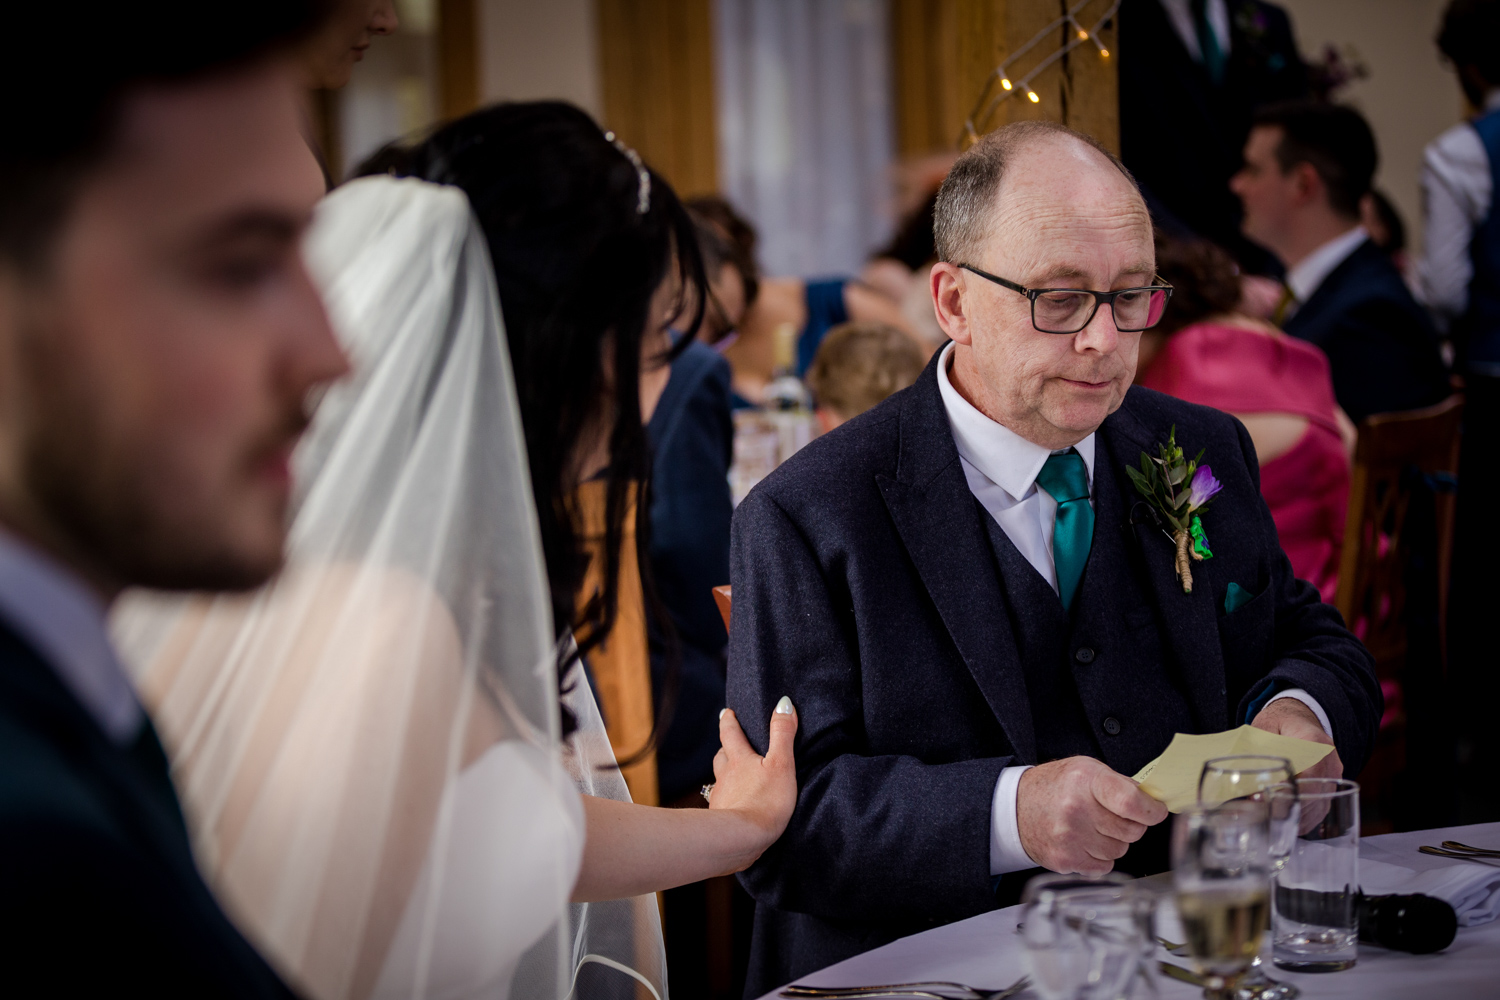 Wedding speeches at the Oak Tree of Peover in Cheshire